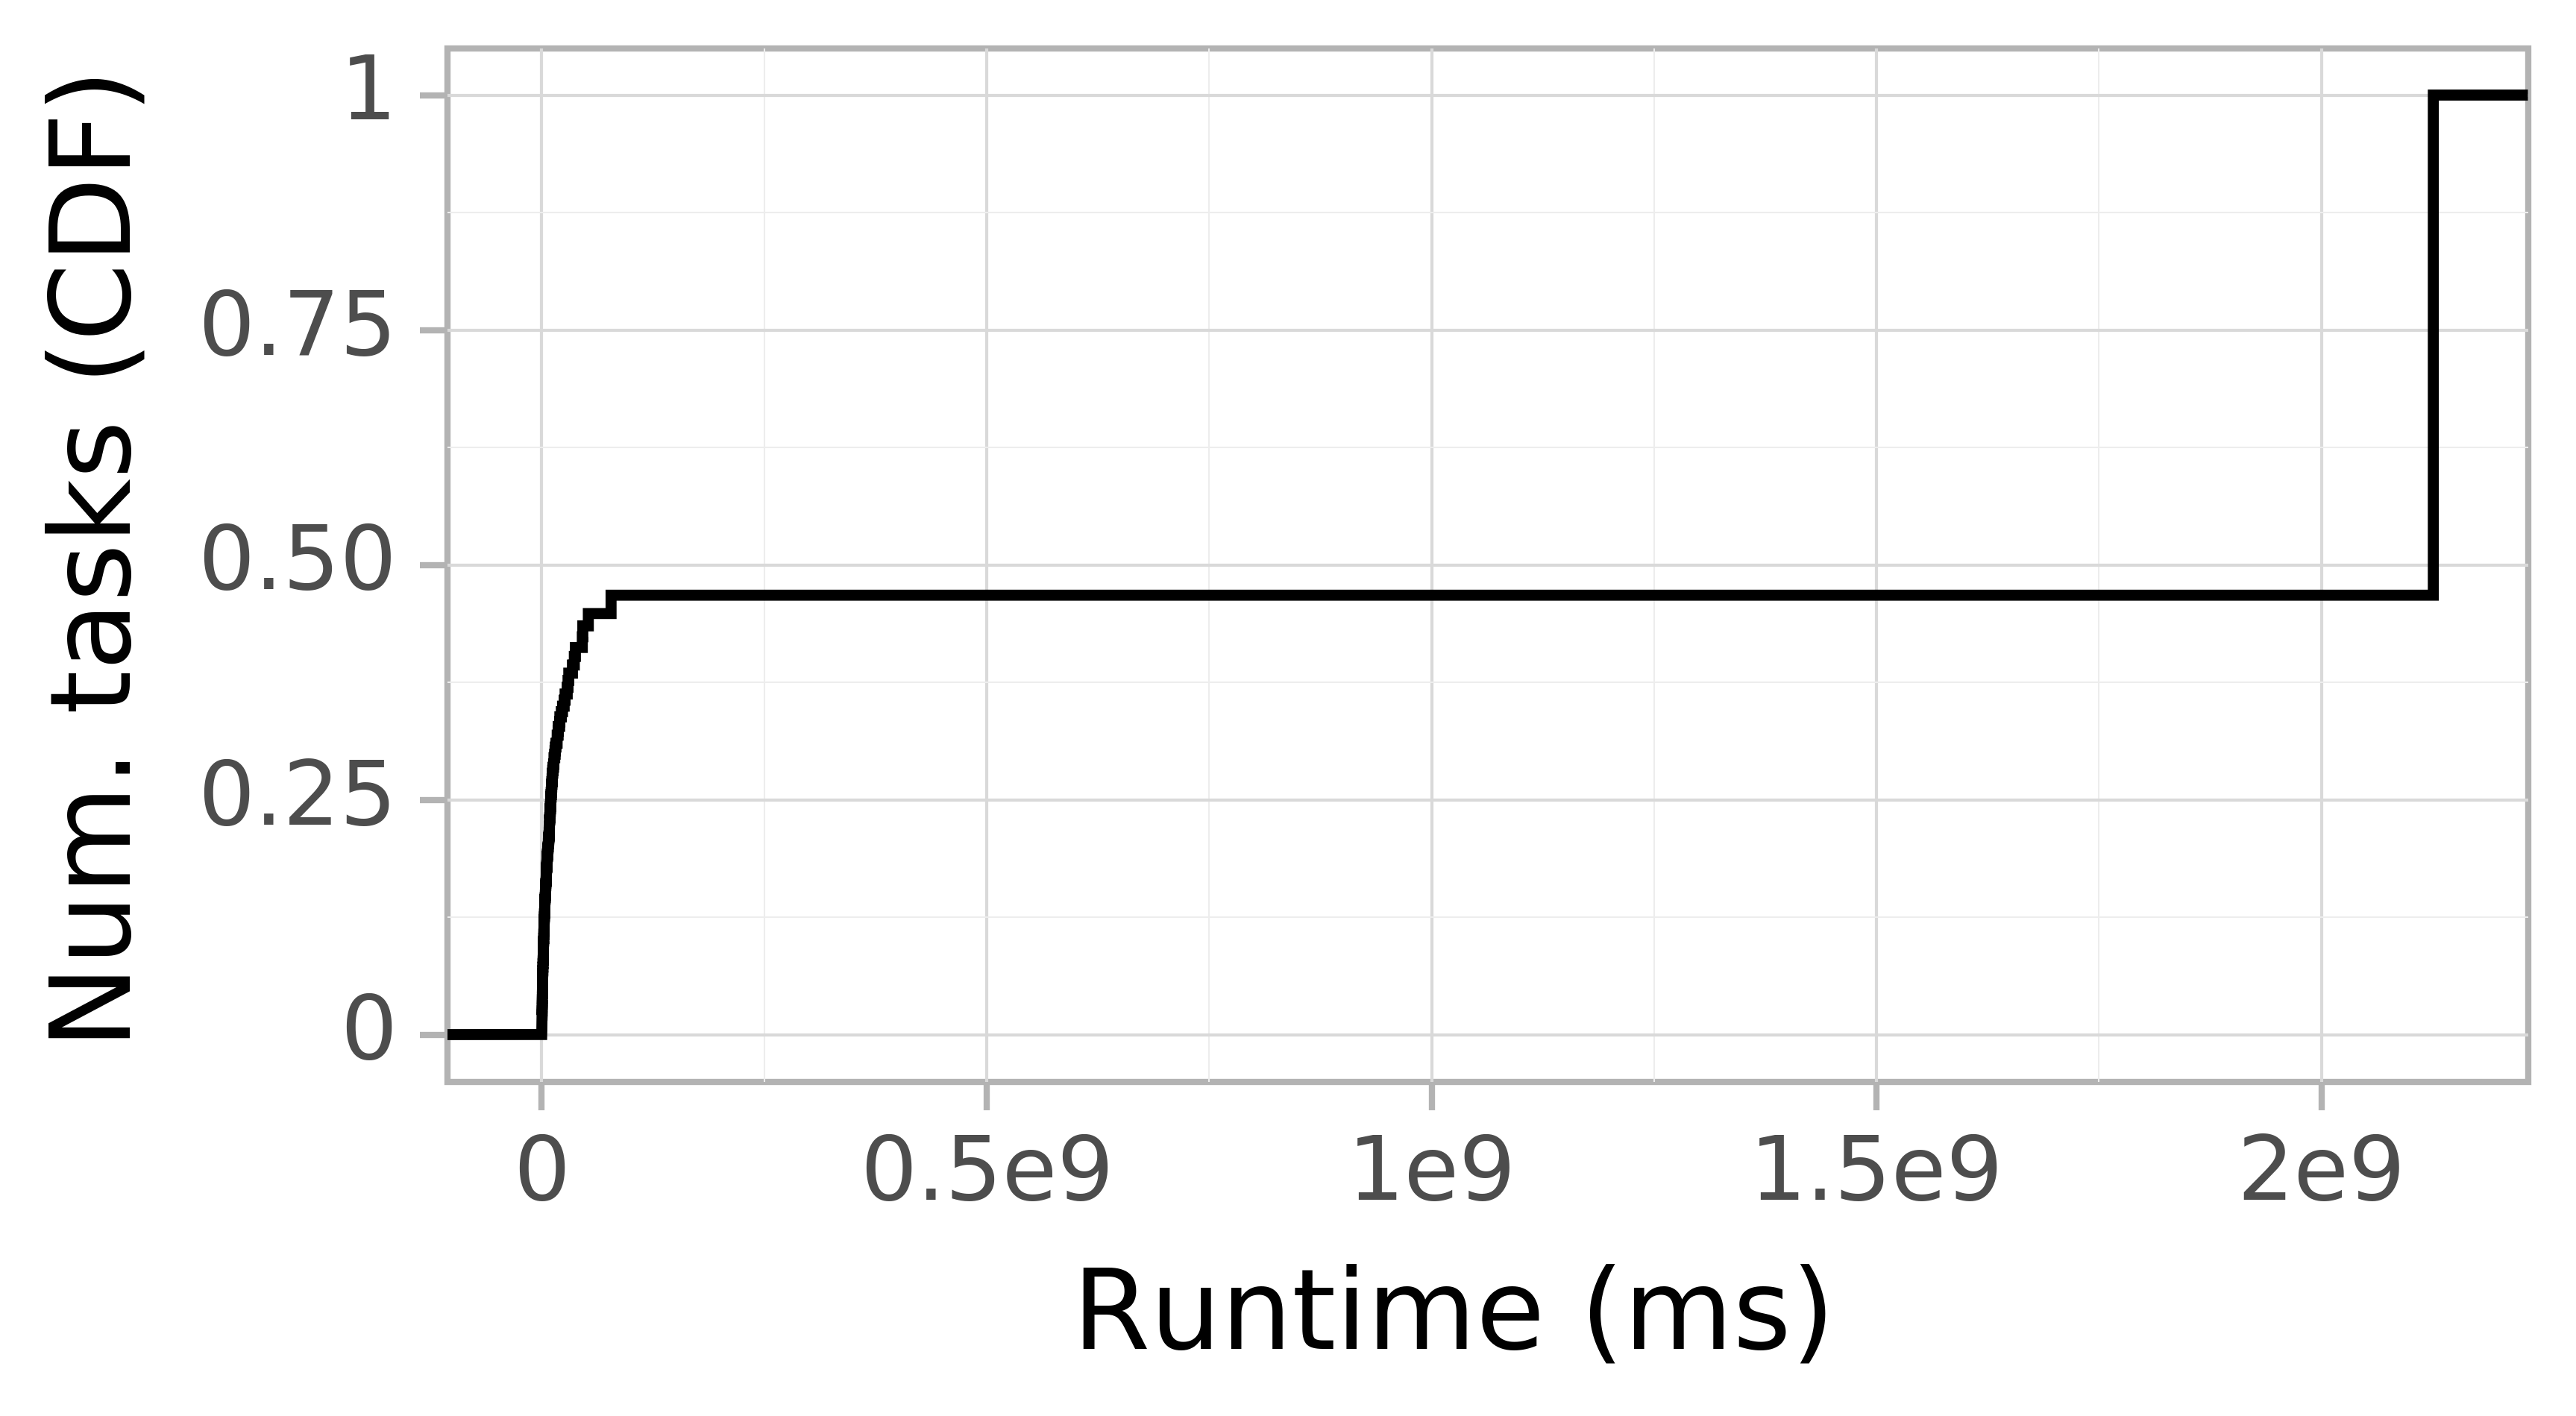 Task runtime CDF graph for the Google trace.